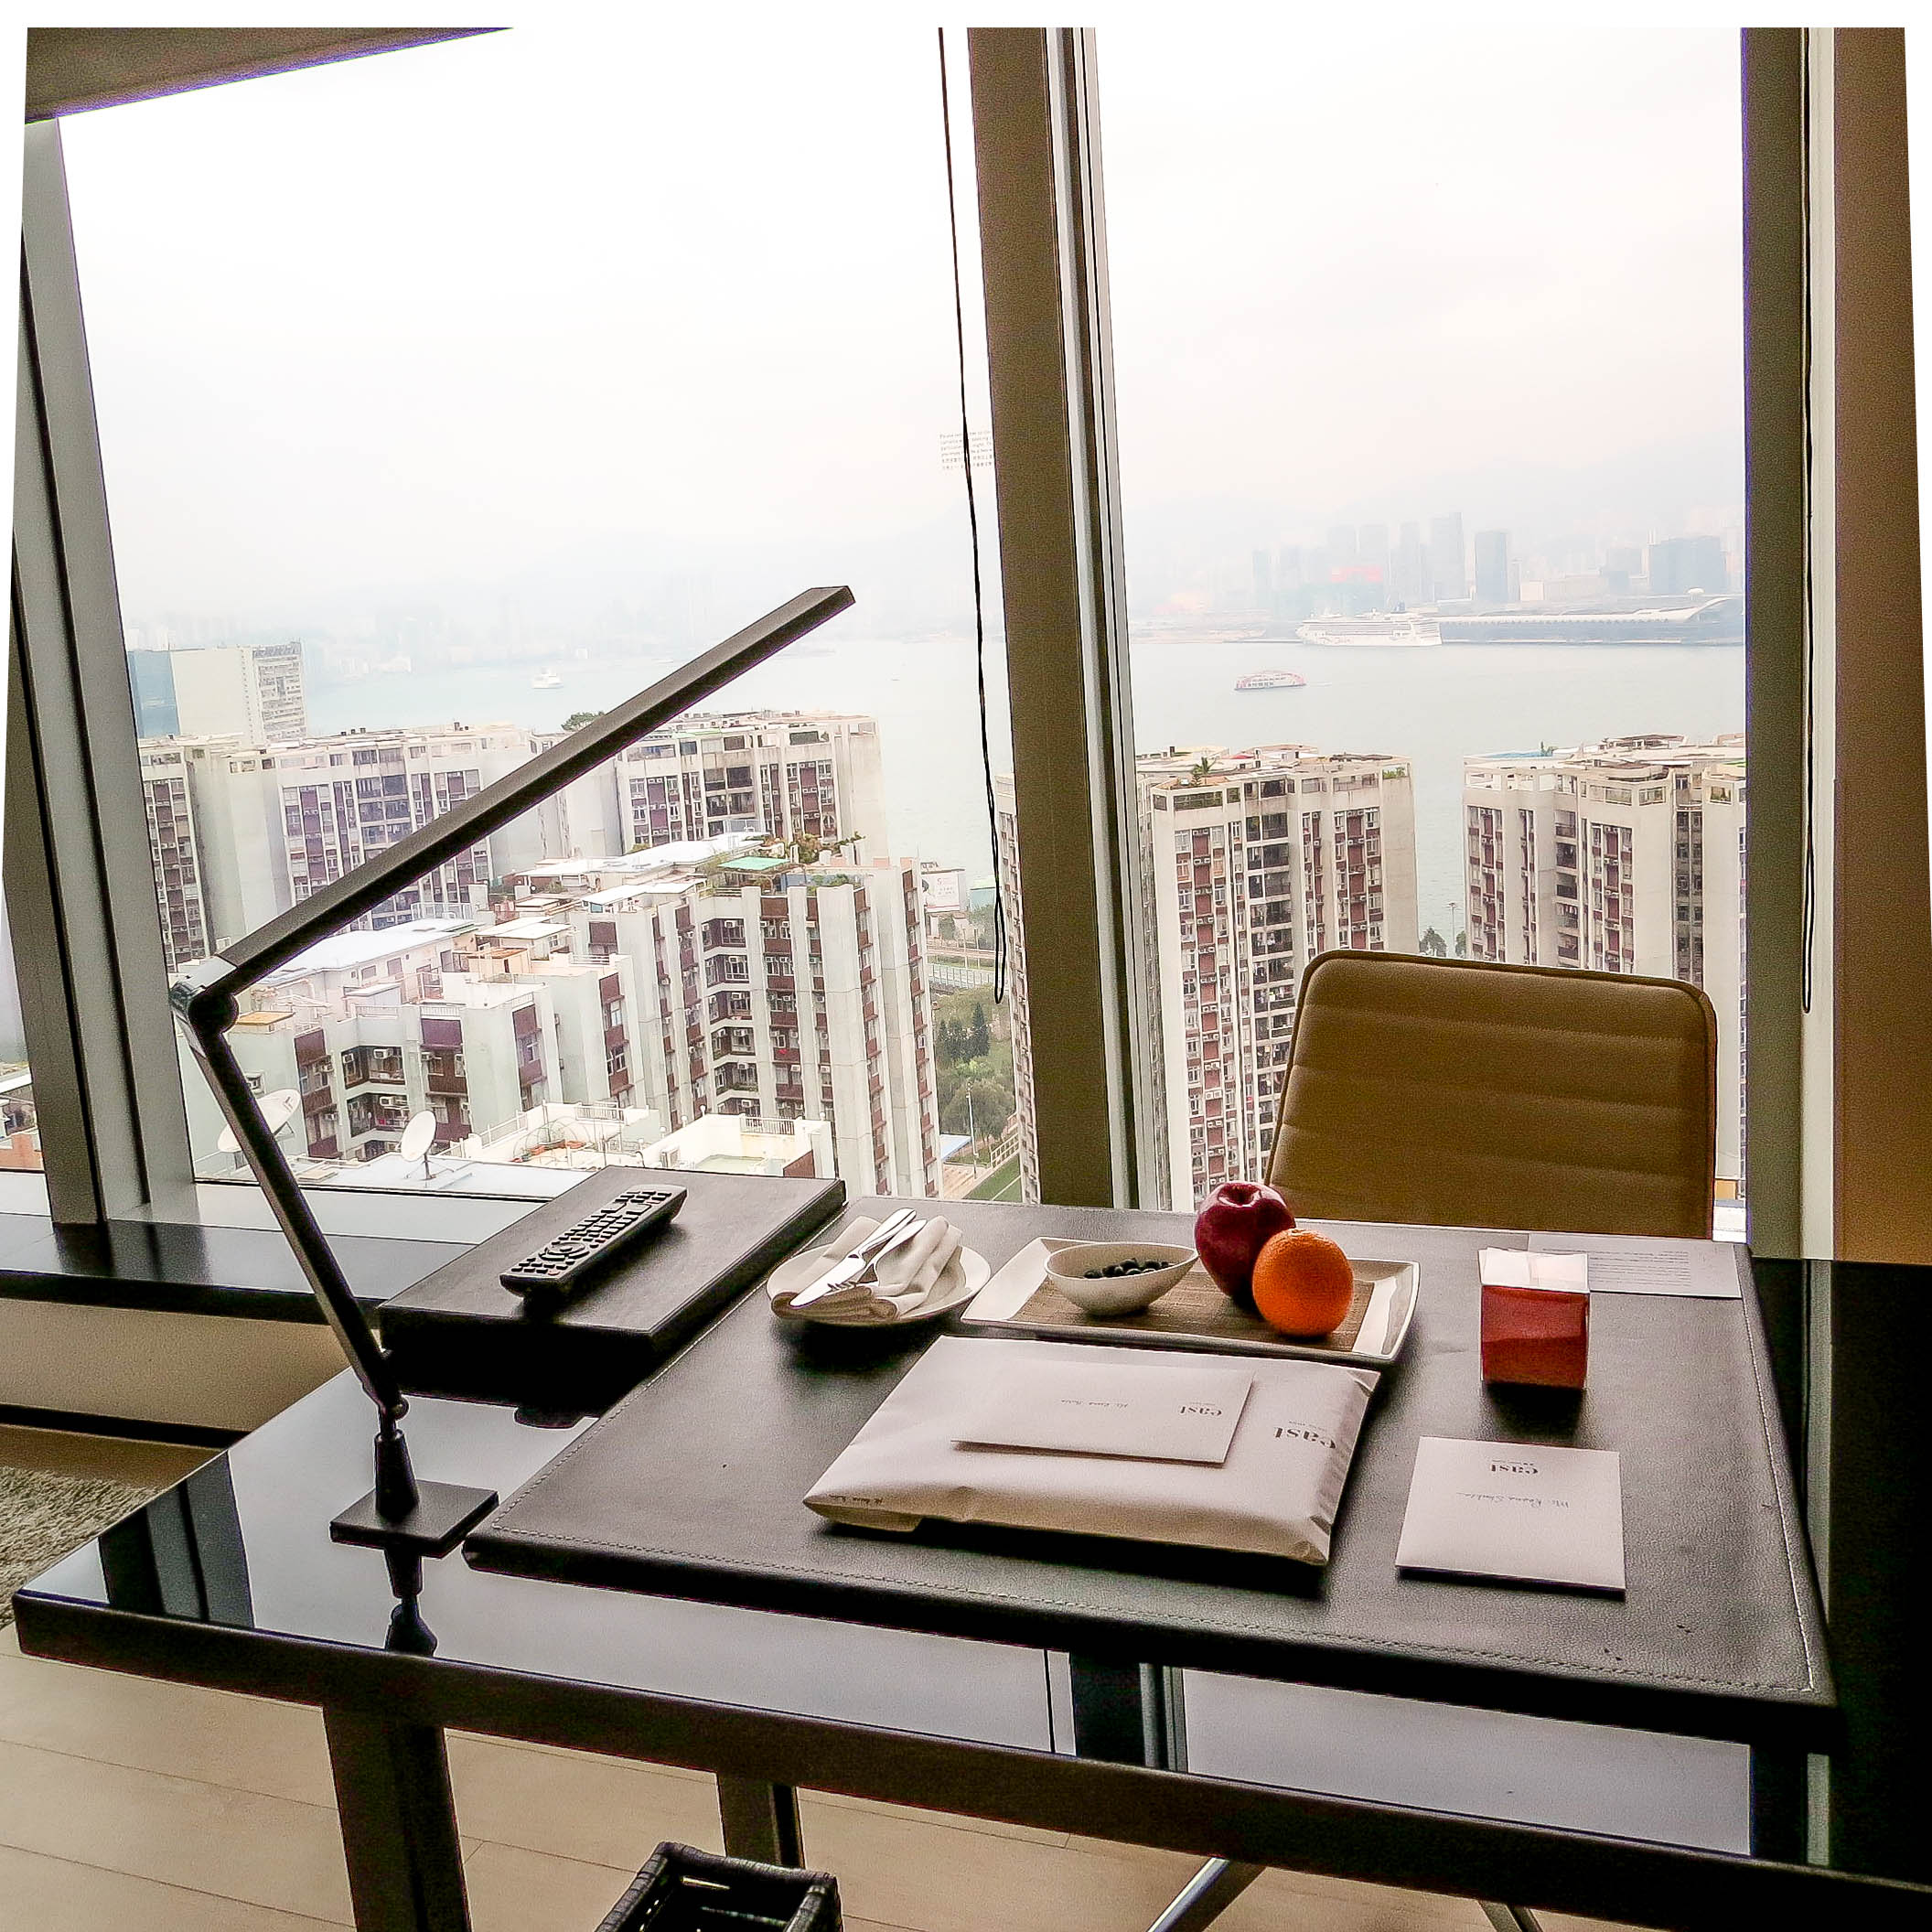 Business hotel in hong kong east hotel - Lifestyle Enthusiast East Hotel Hong Kong Harbour Corner Desk